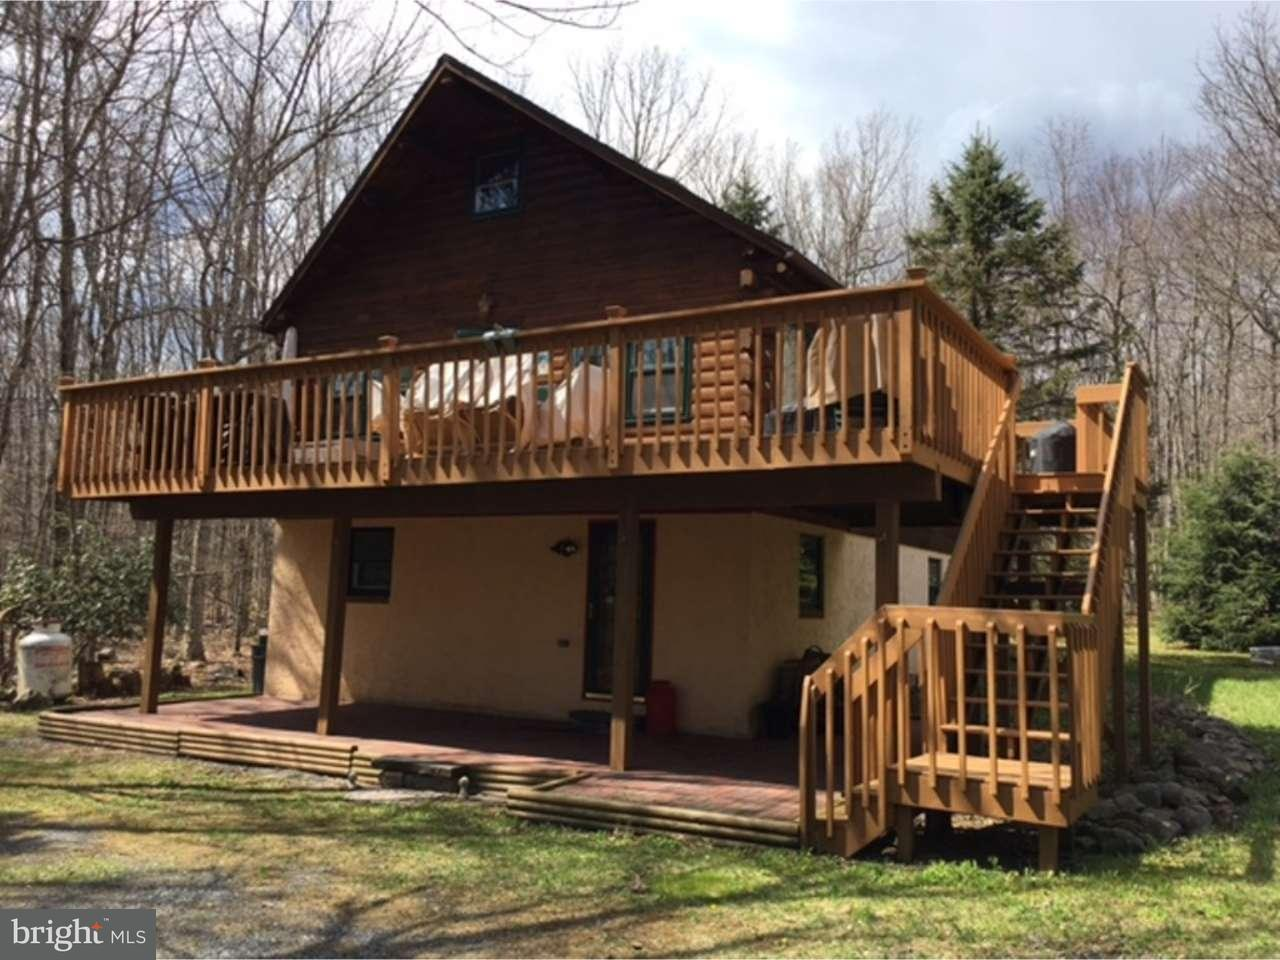 Single Family Home for Sale at 49 DOGWOOD Drive Jim Thorpe, Pennsylvania 18229 United States